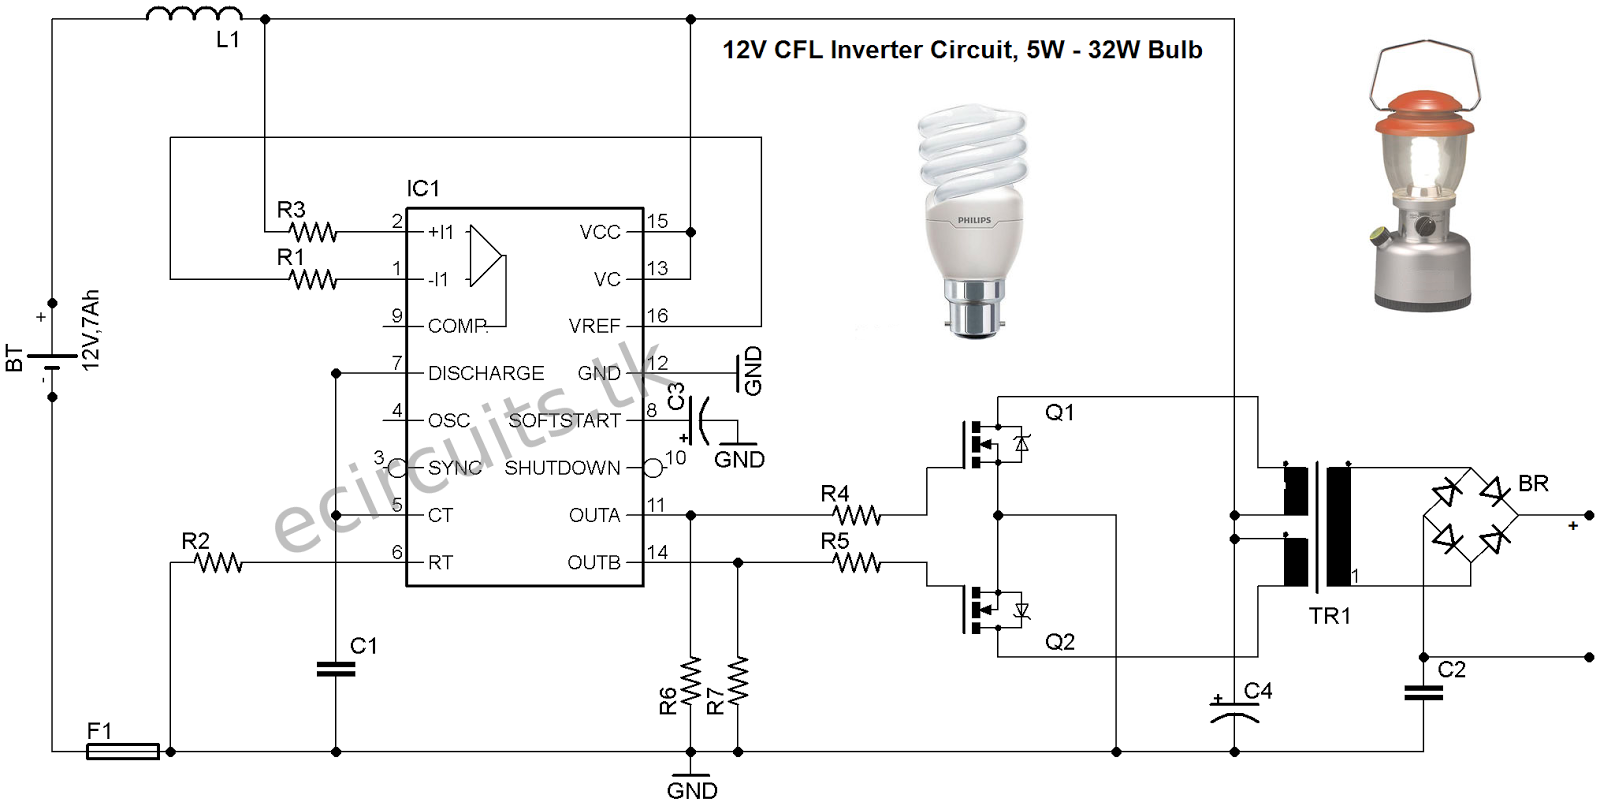 12v Cfl Emergency Light Circuit Using 3525 Ic Mini Inverter 200m Fm Transmitter Electronic Circuits And Diagramelectronics Lighting